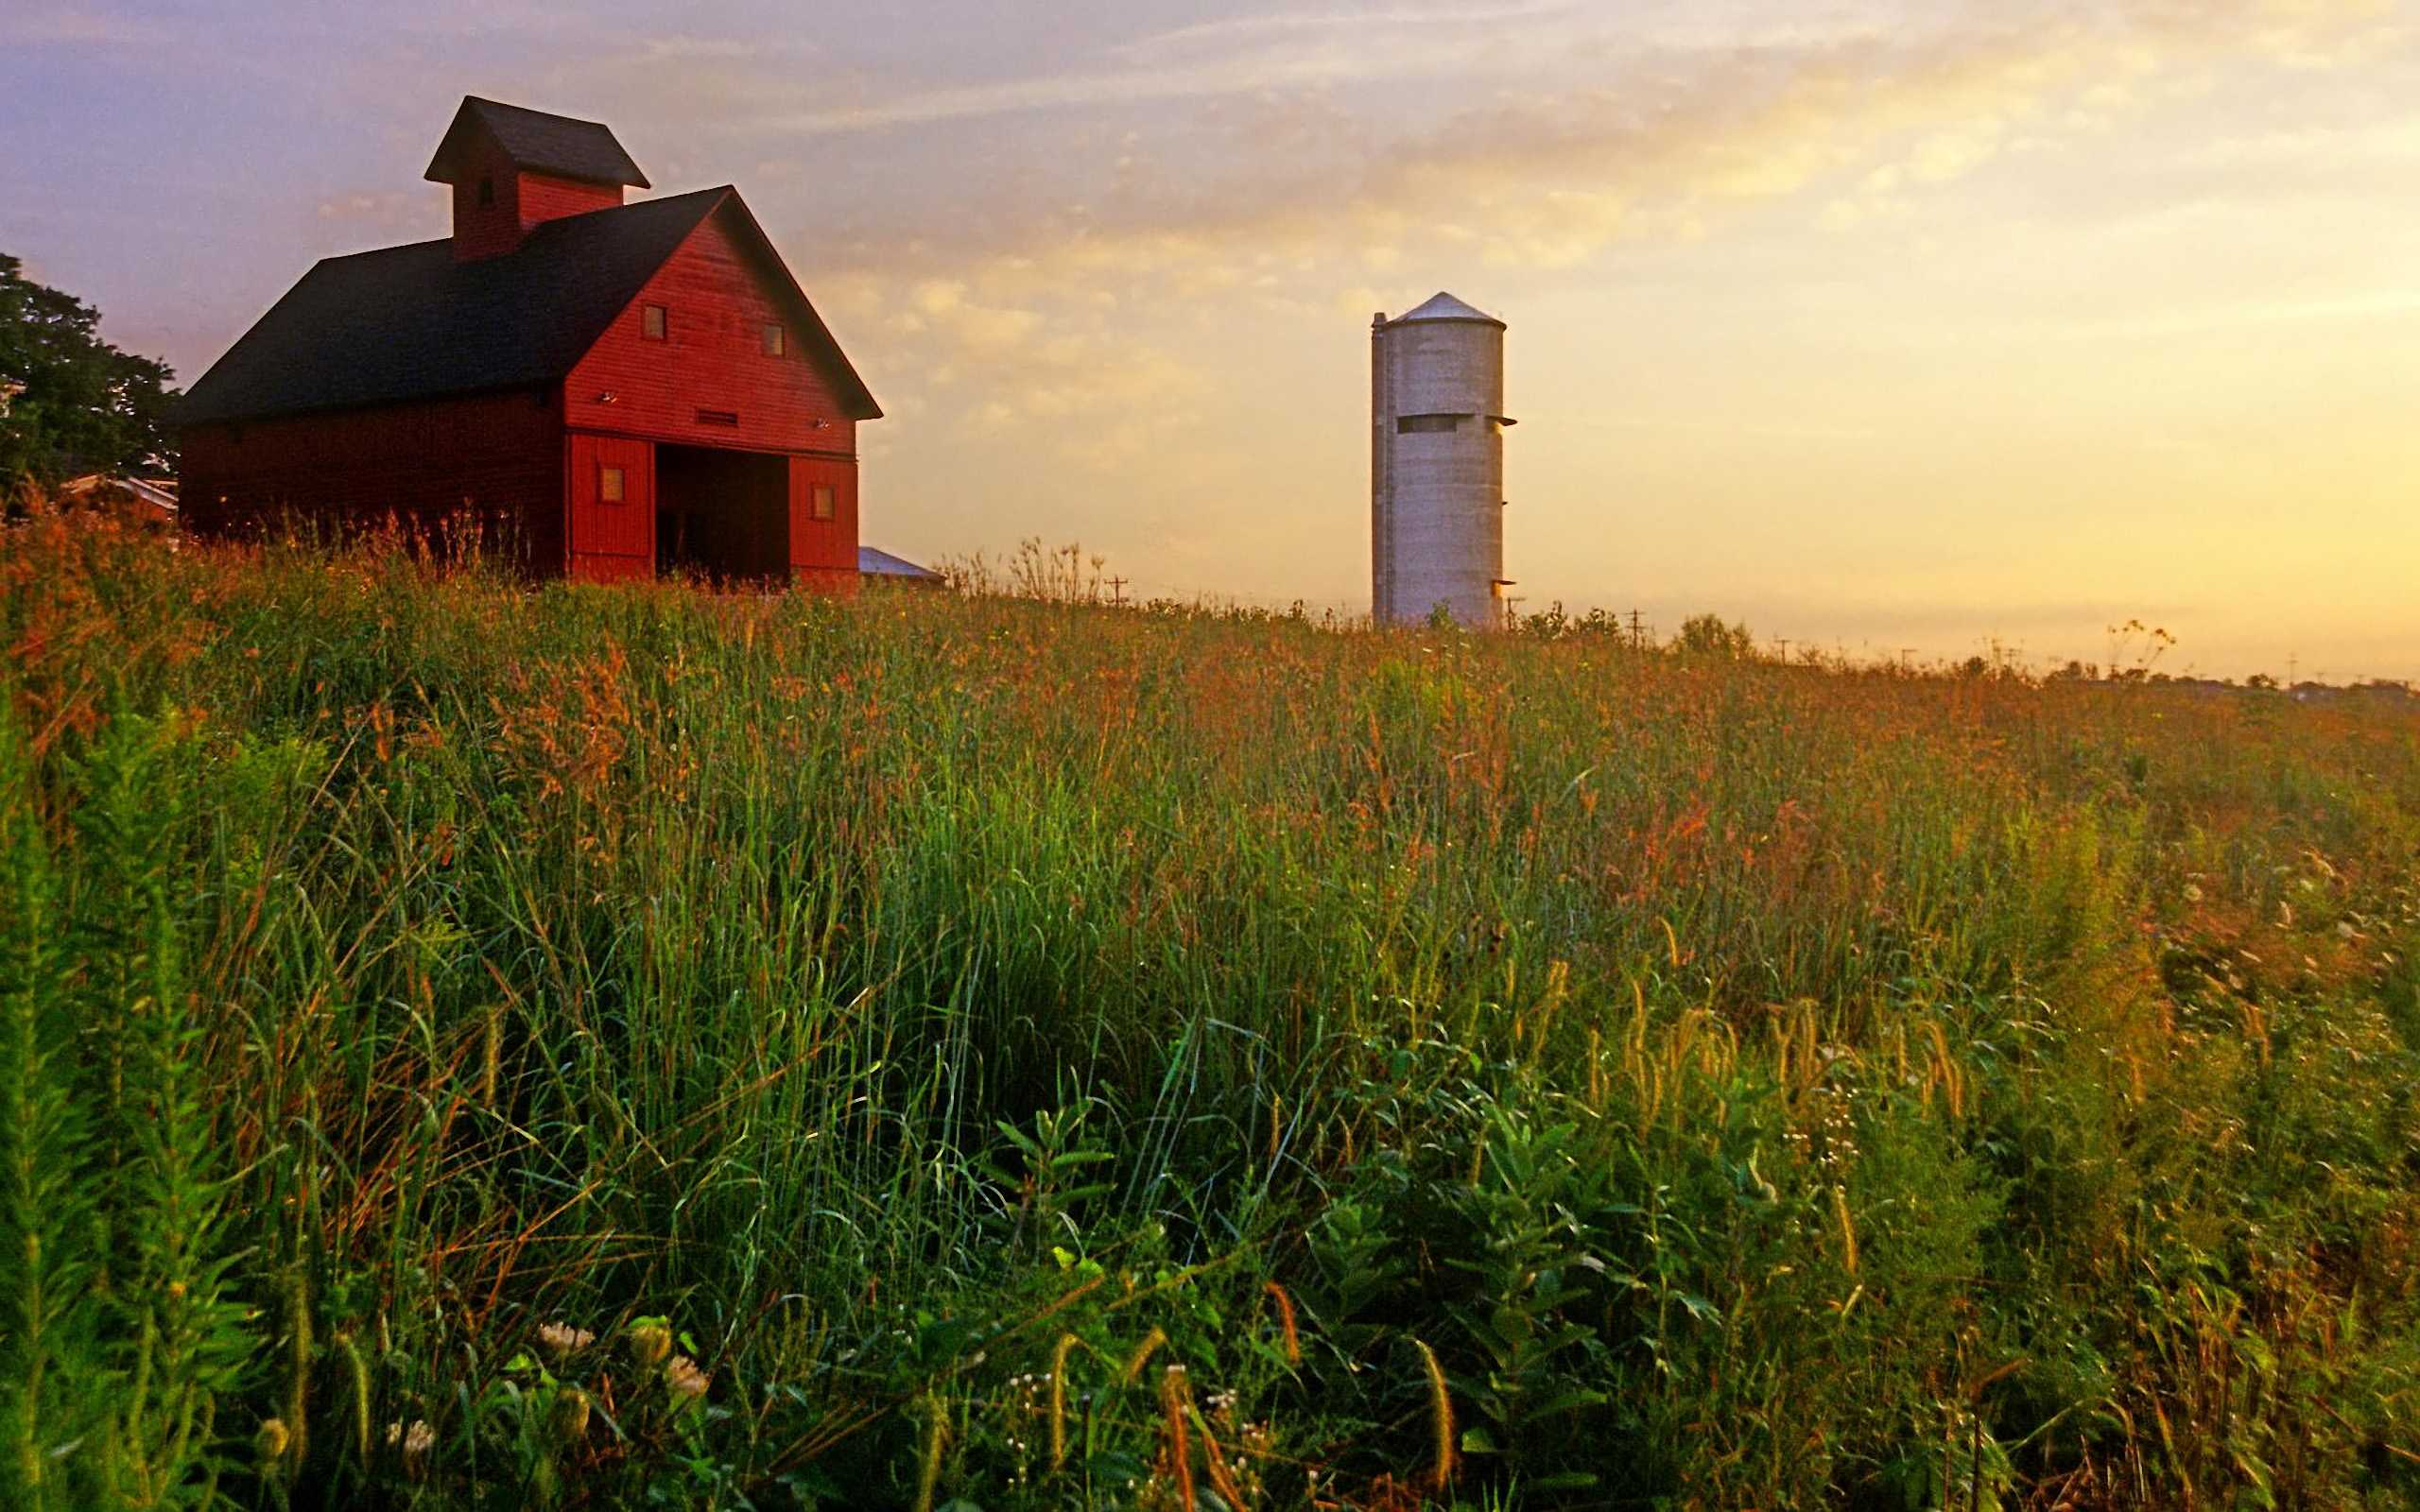 Other Wallpapers   Download Peck Farm Granary and Silo Kane 2560x1600